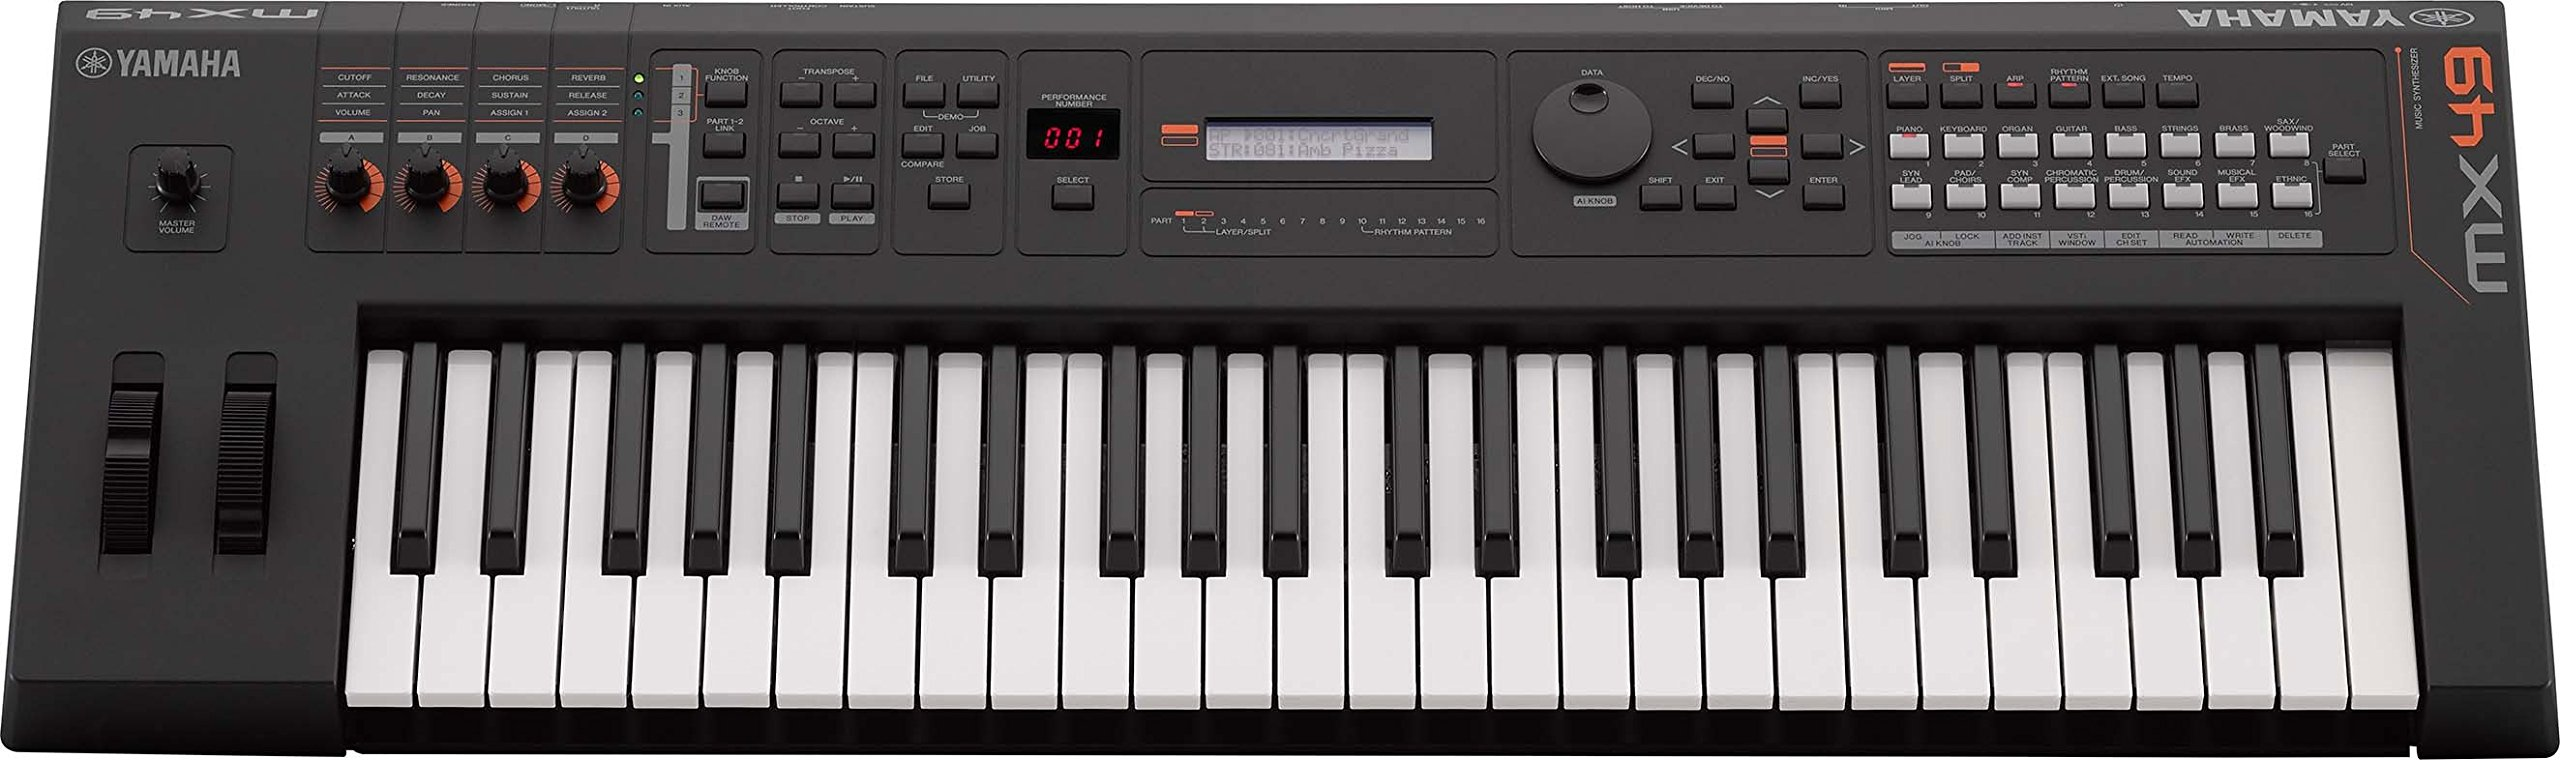 Yamaha MX49 Music Production Synthesizer, Black by YAMAHA